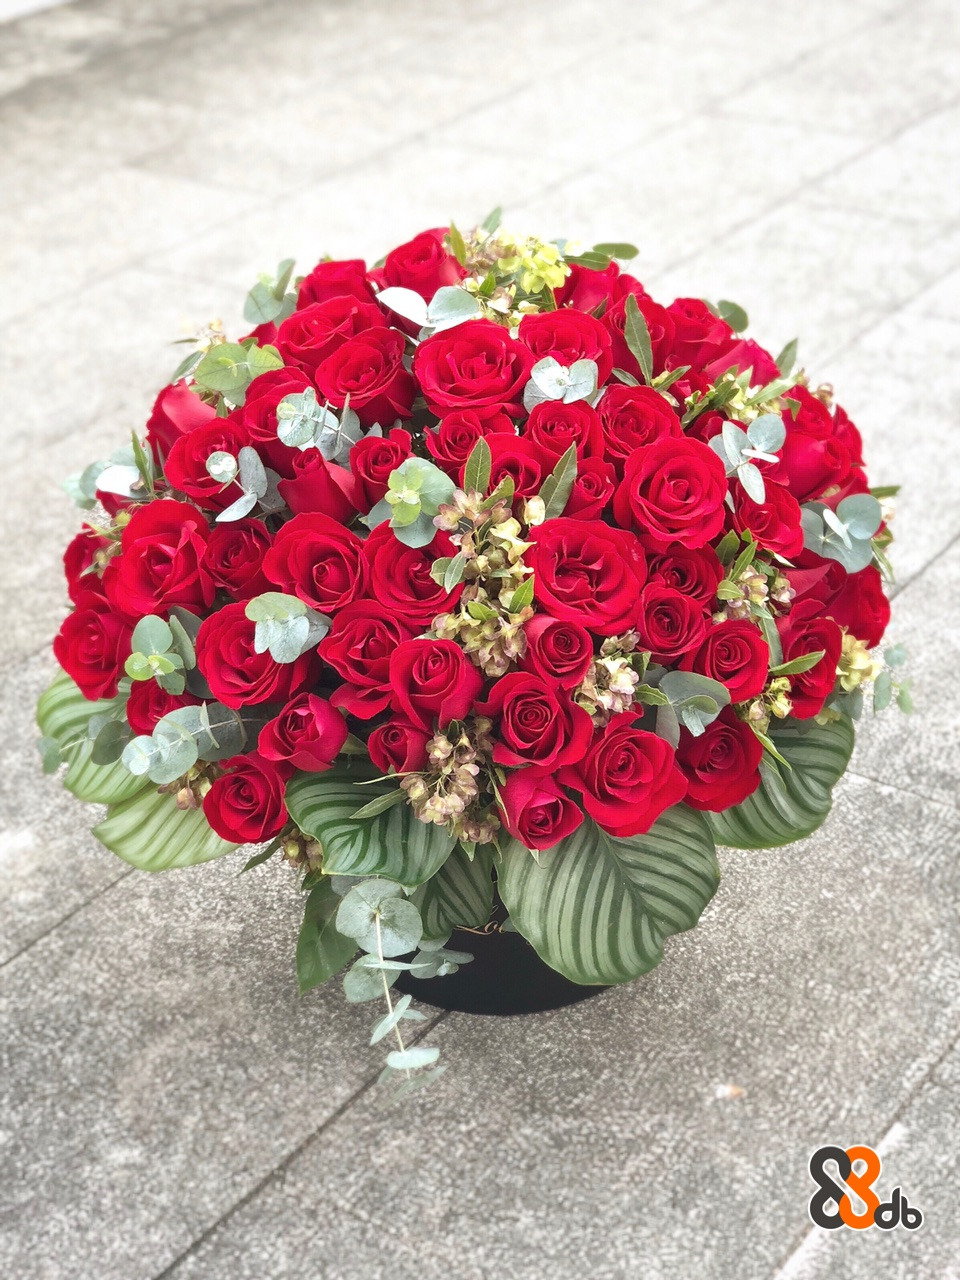 flower,flower bouquet,rose,floristry,flower arranging